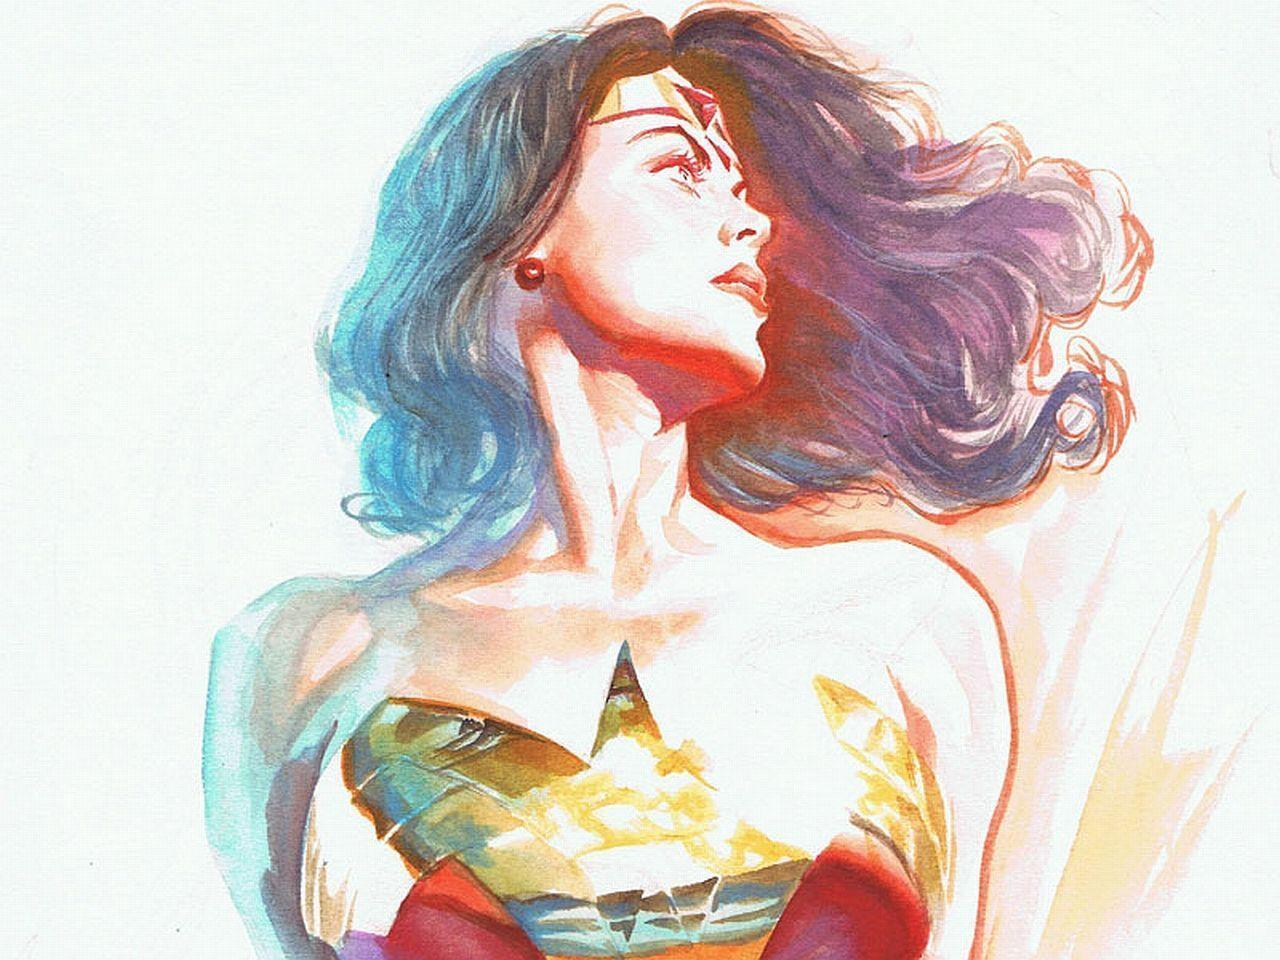 Wonder Woman Computer Wallpapers, Desktop Backgrounds 1280x960 Id ...